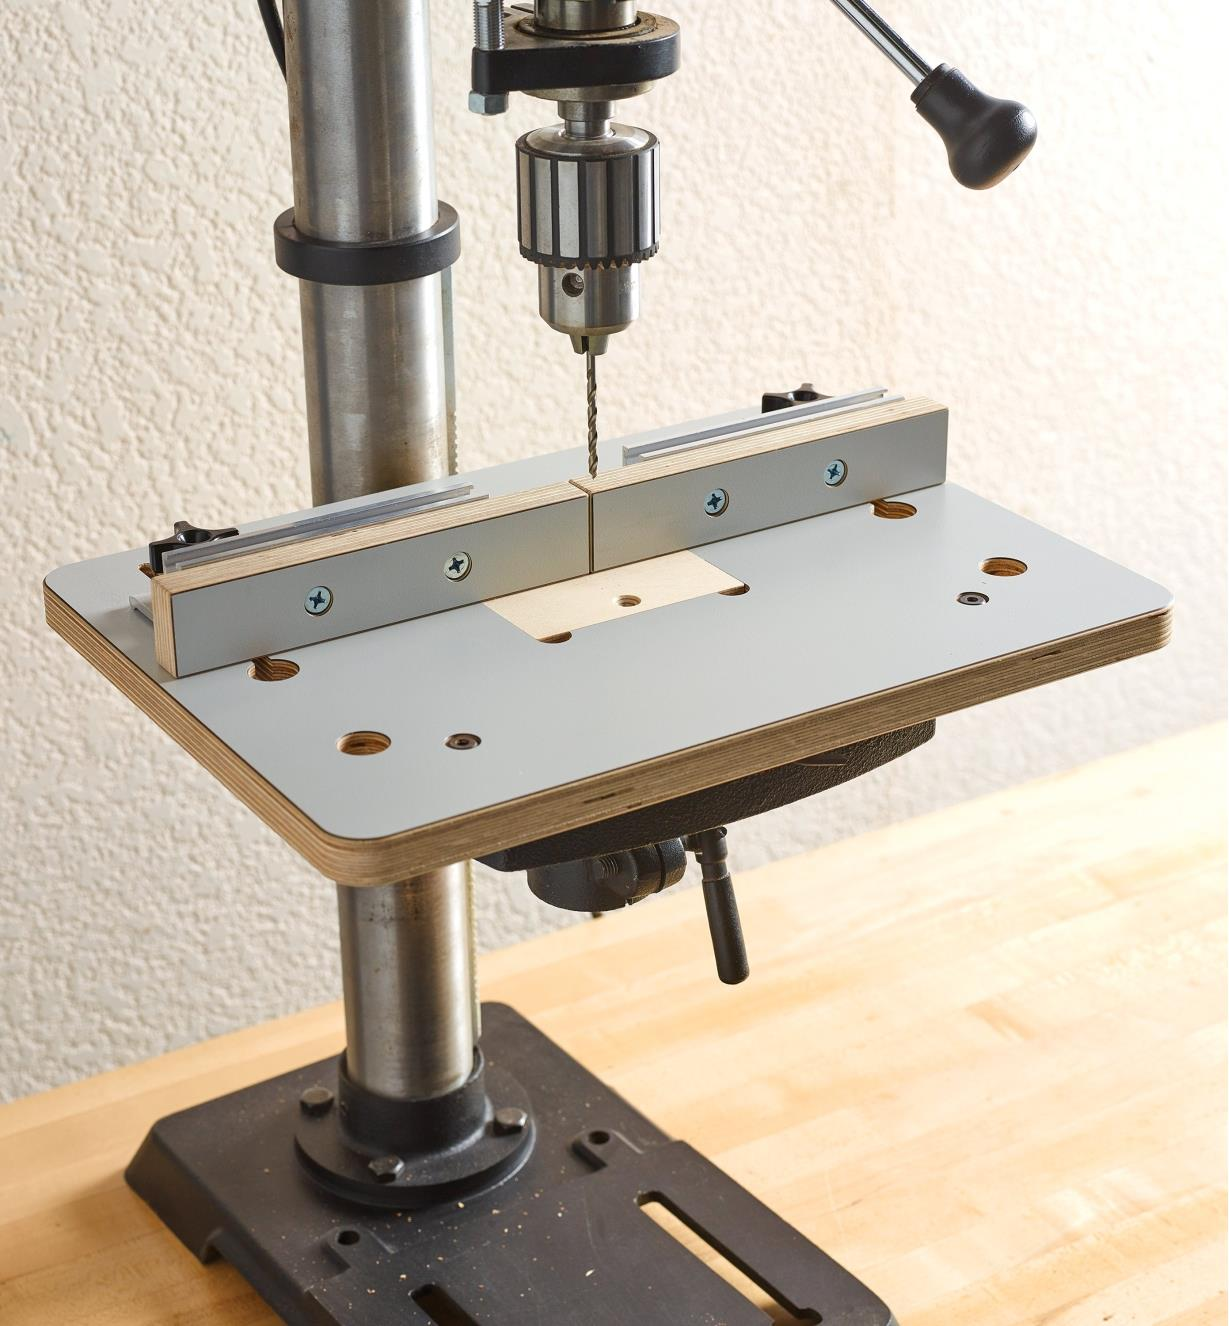 A Veritas small drill-press table and fence mounted on a drill press